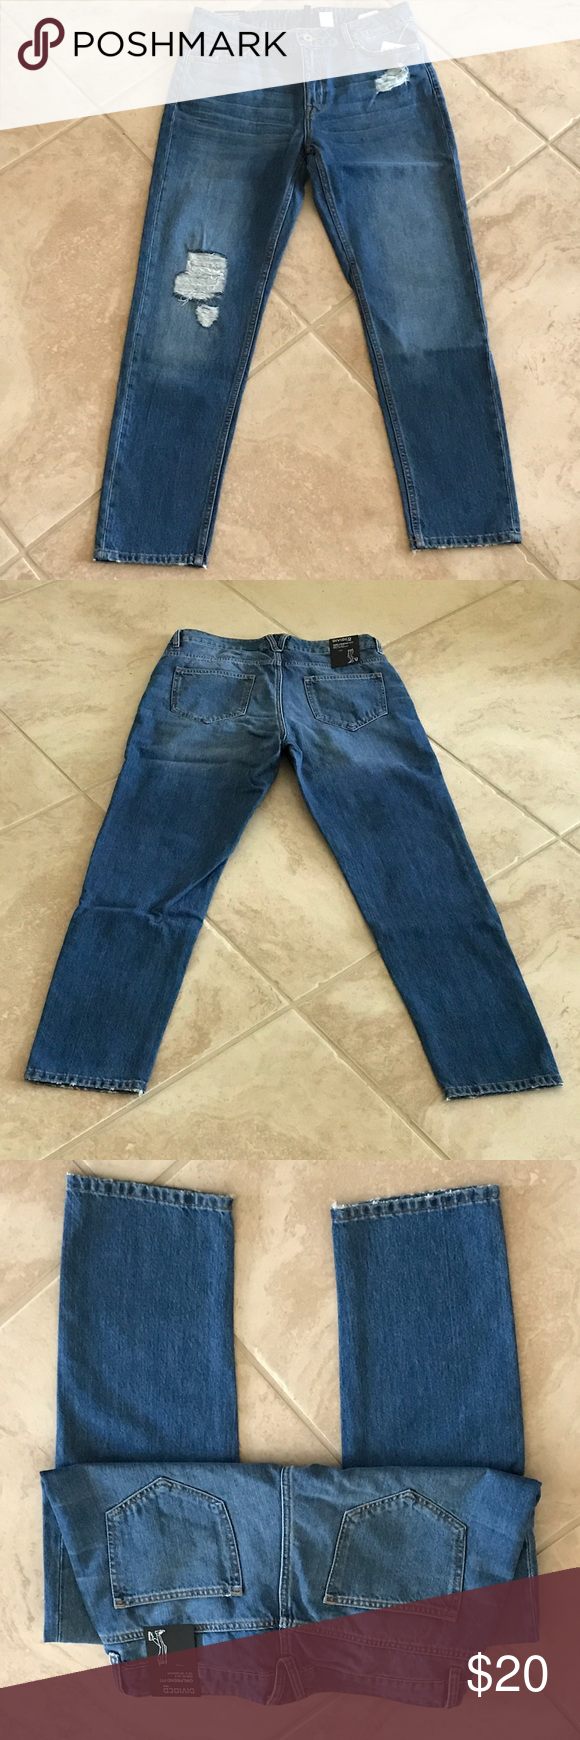 H&M Girlfriend fit jeans brand new with tags H&M Girlfriend jeans brand-new with tags H&M Jeans